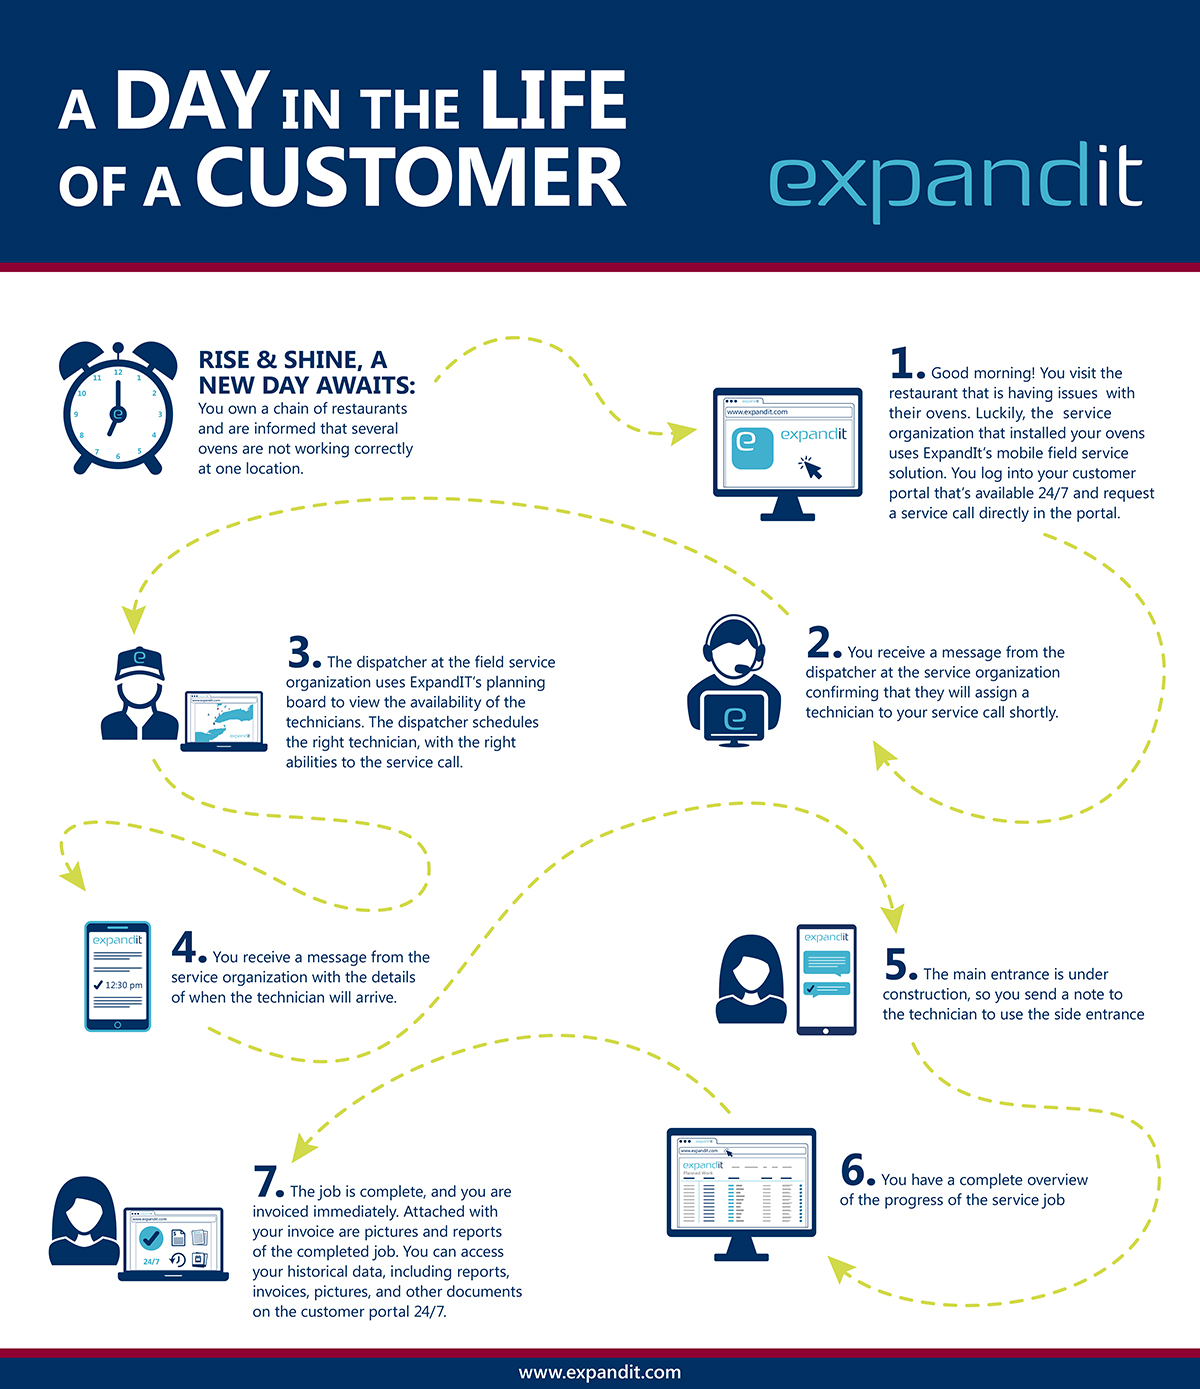 A Day in the Life of a Customer infographic